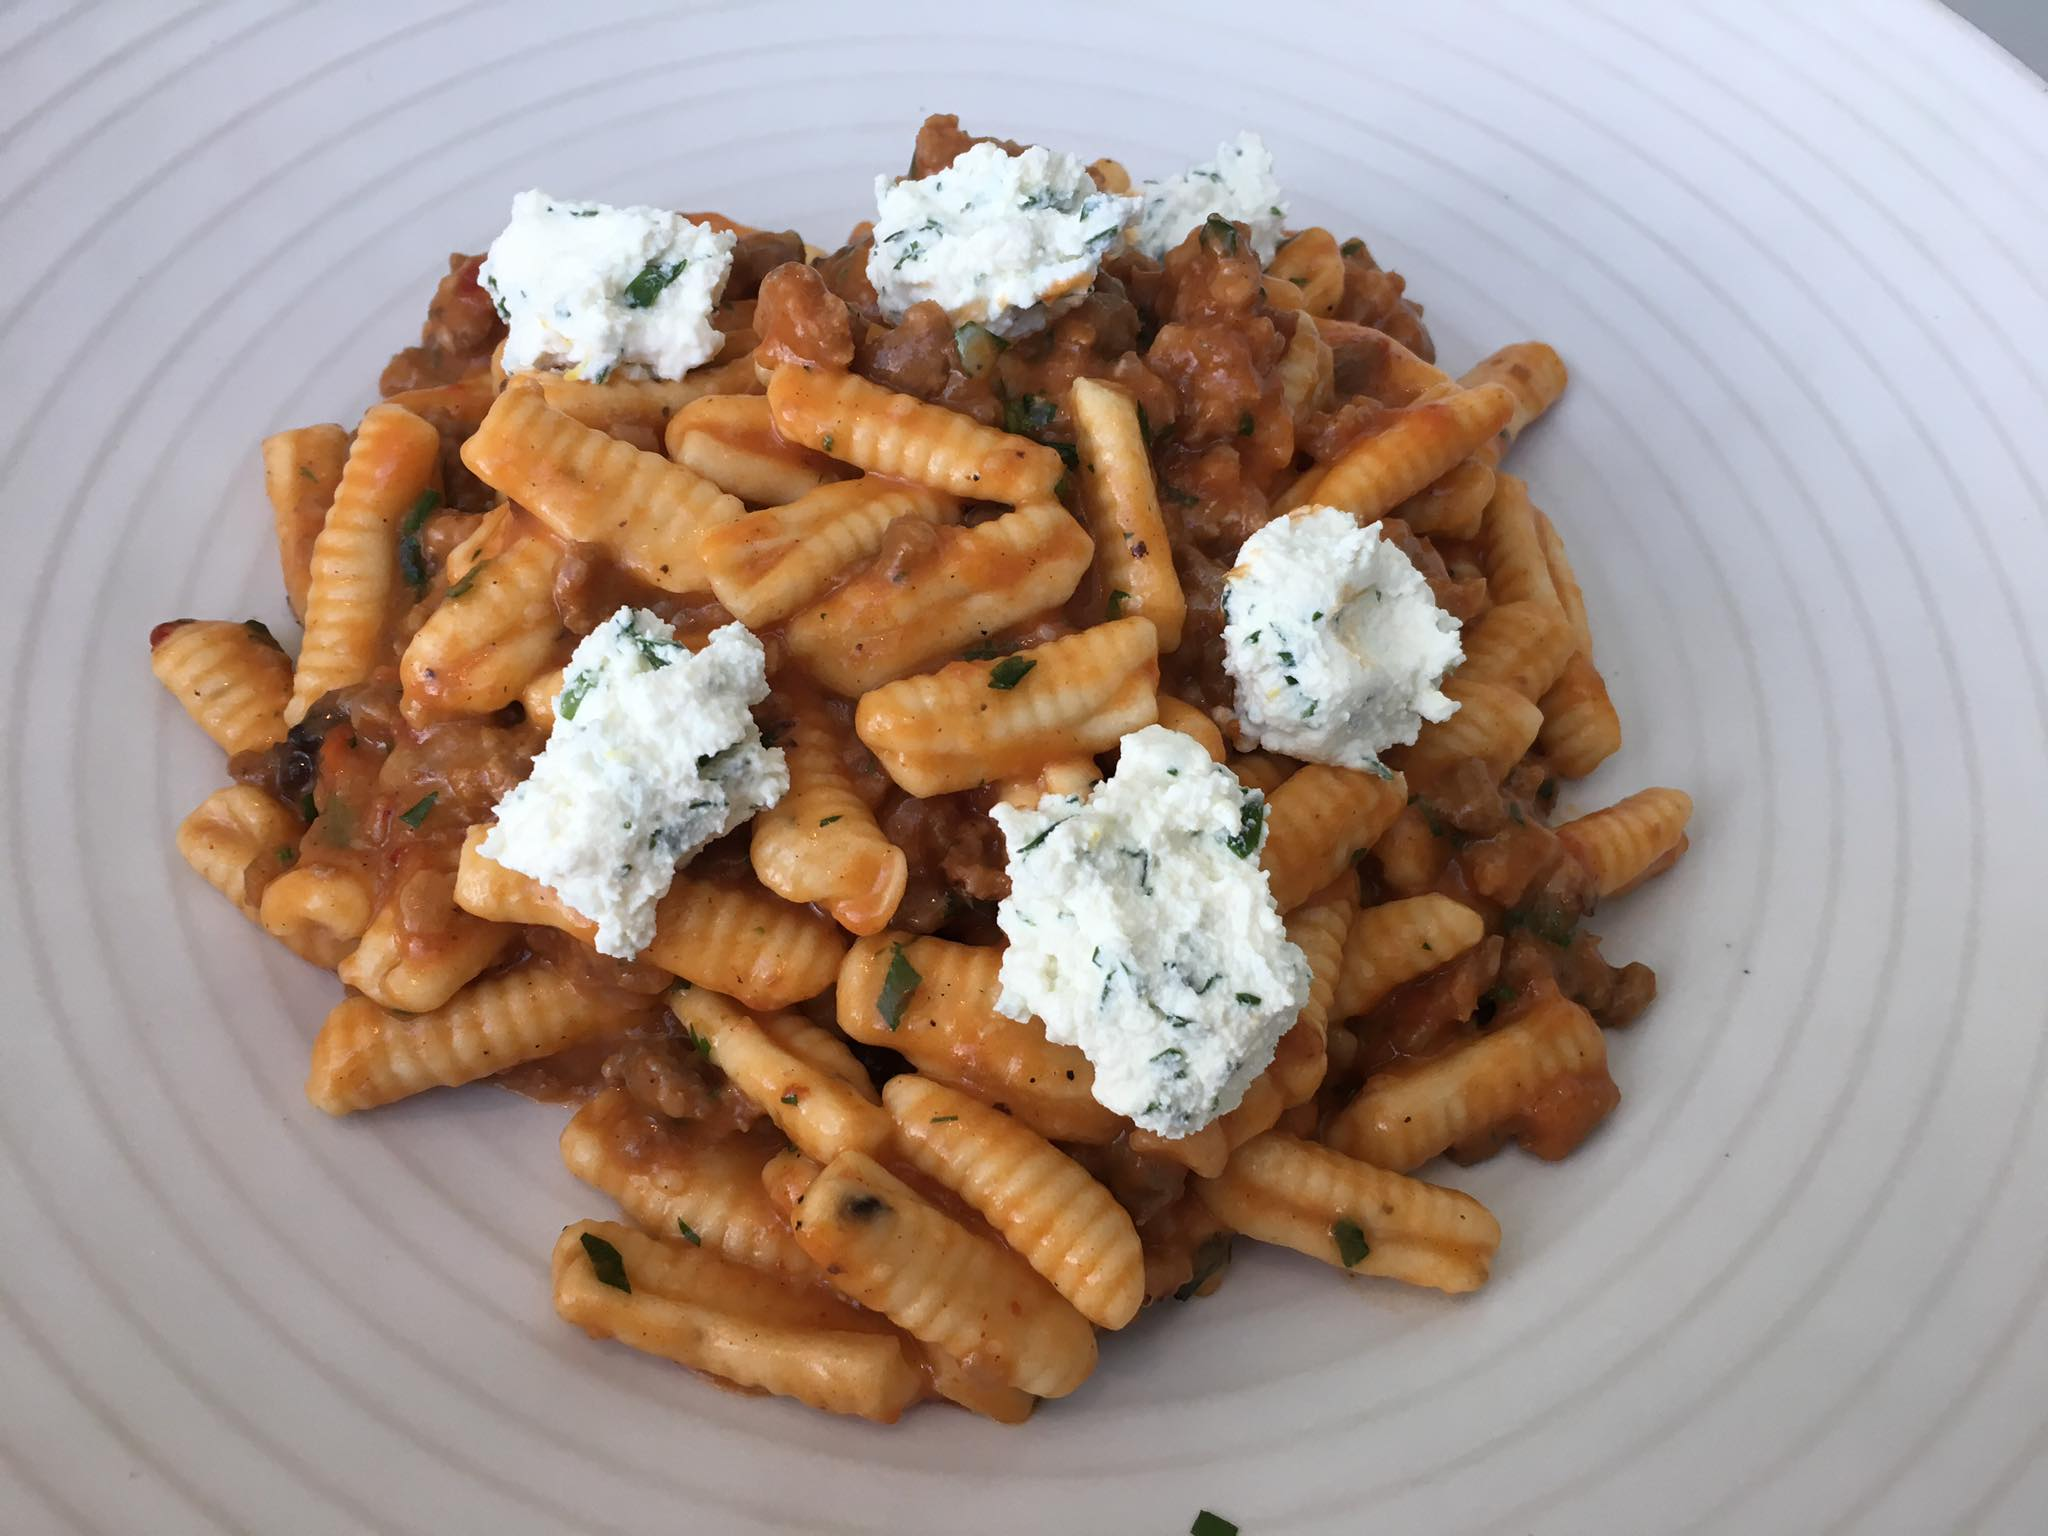 Cavatelli at FarmTable Kitchen